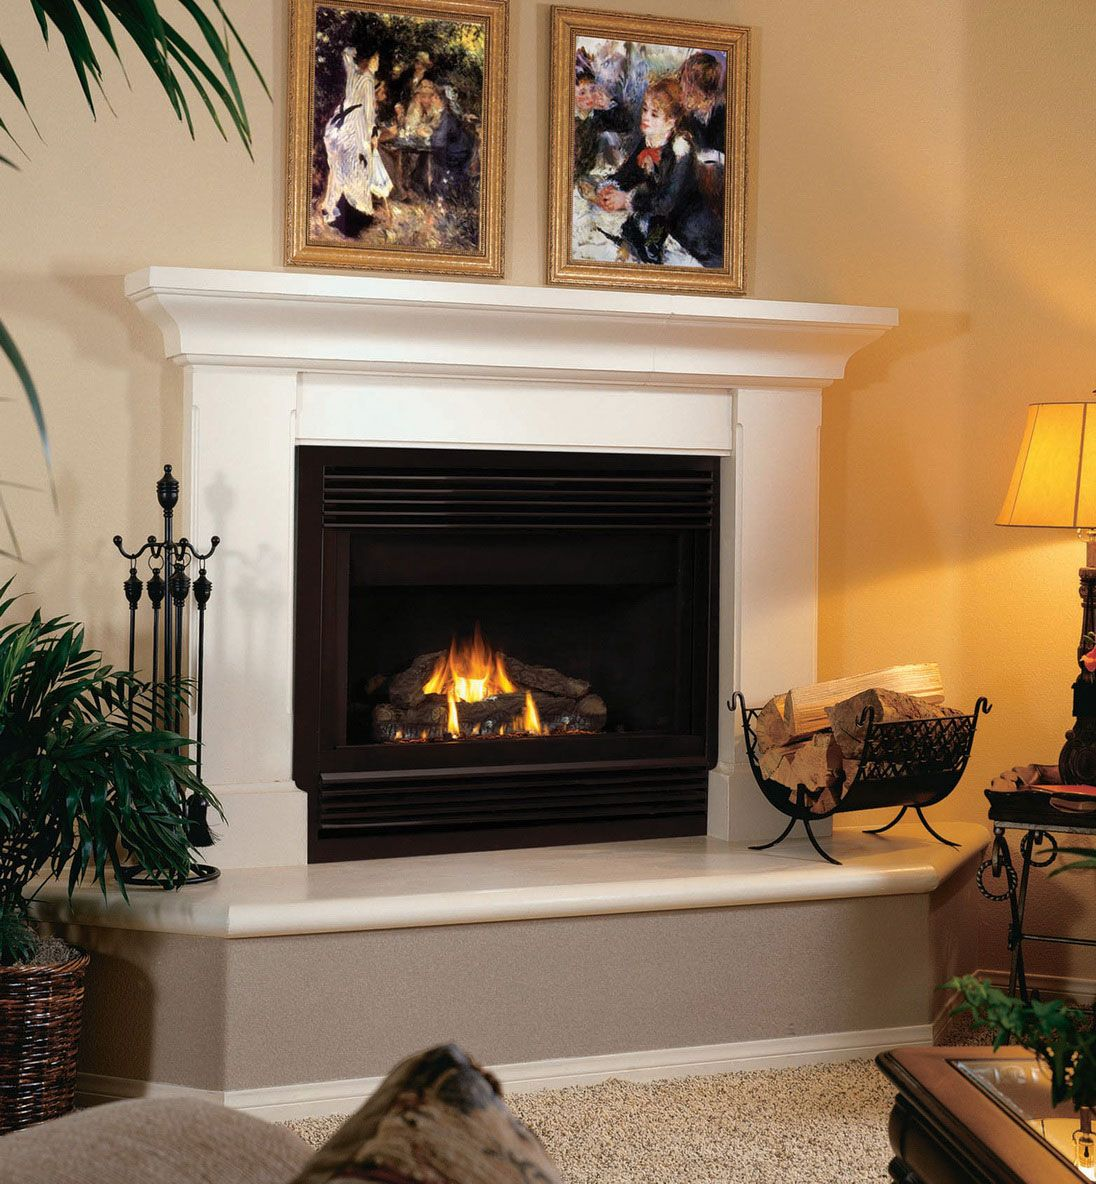 Fireplace Mantel Ideas 14 Best House  Fireplaces 2 Images On Pinterest  Fireplace